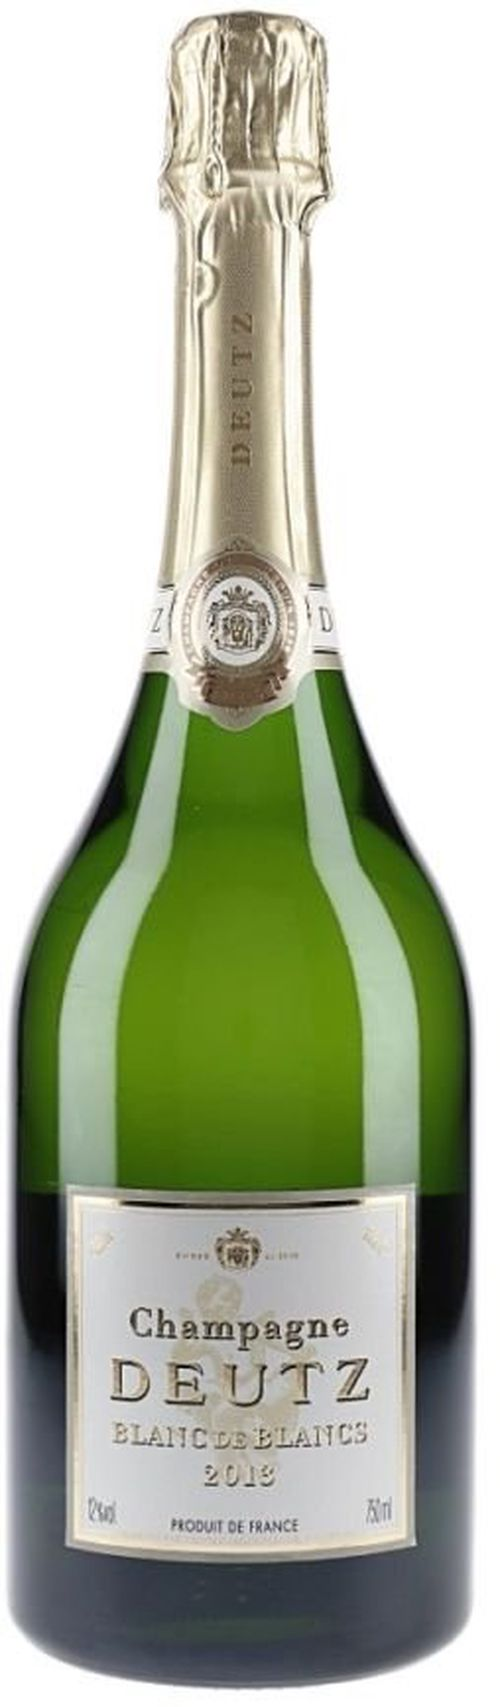 Deutz Blanc de Blancs 2013 1,5l 12% GB